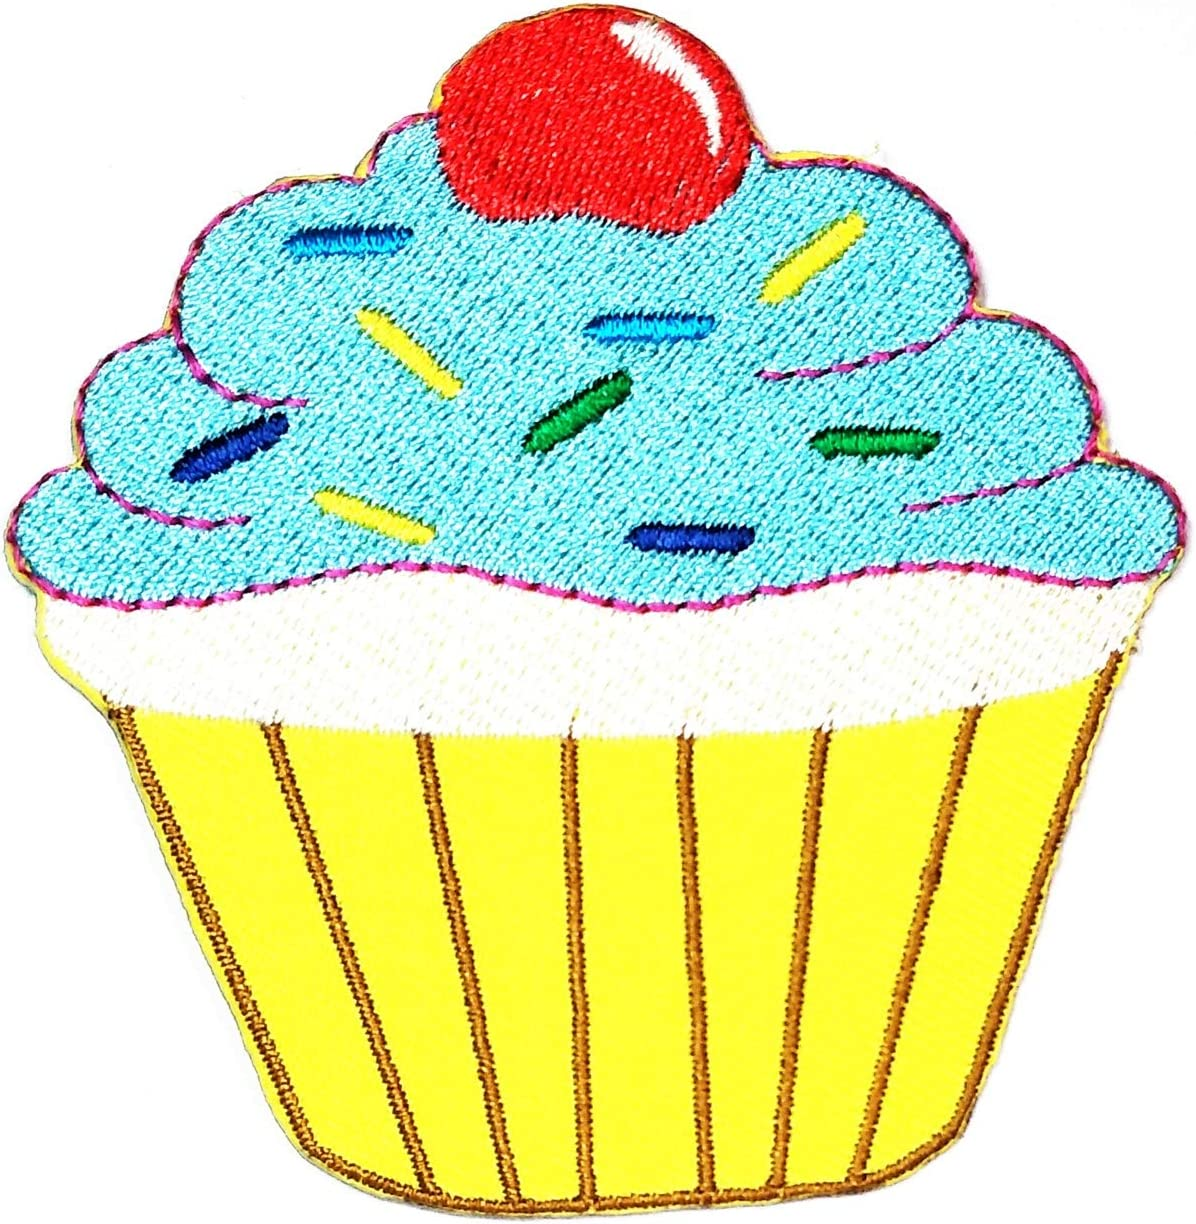 Yellow Cup Red Cherry Cupcake Patch Jacket Polo T- Shirt Hat Backpacks Applique Embroidered Sew Iron on Patch Cake Happy Birthday Cupcake Bakery Sweets Dessert Food Patches Sticker Cartoon (15)